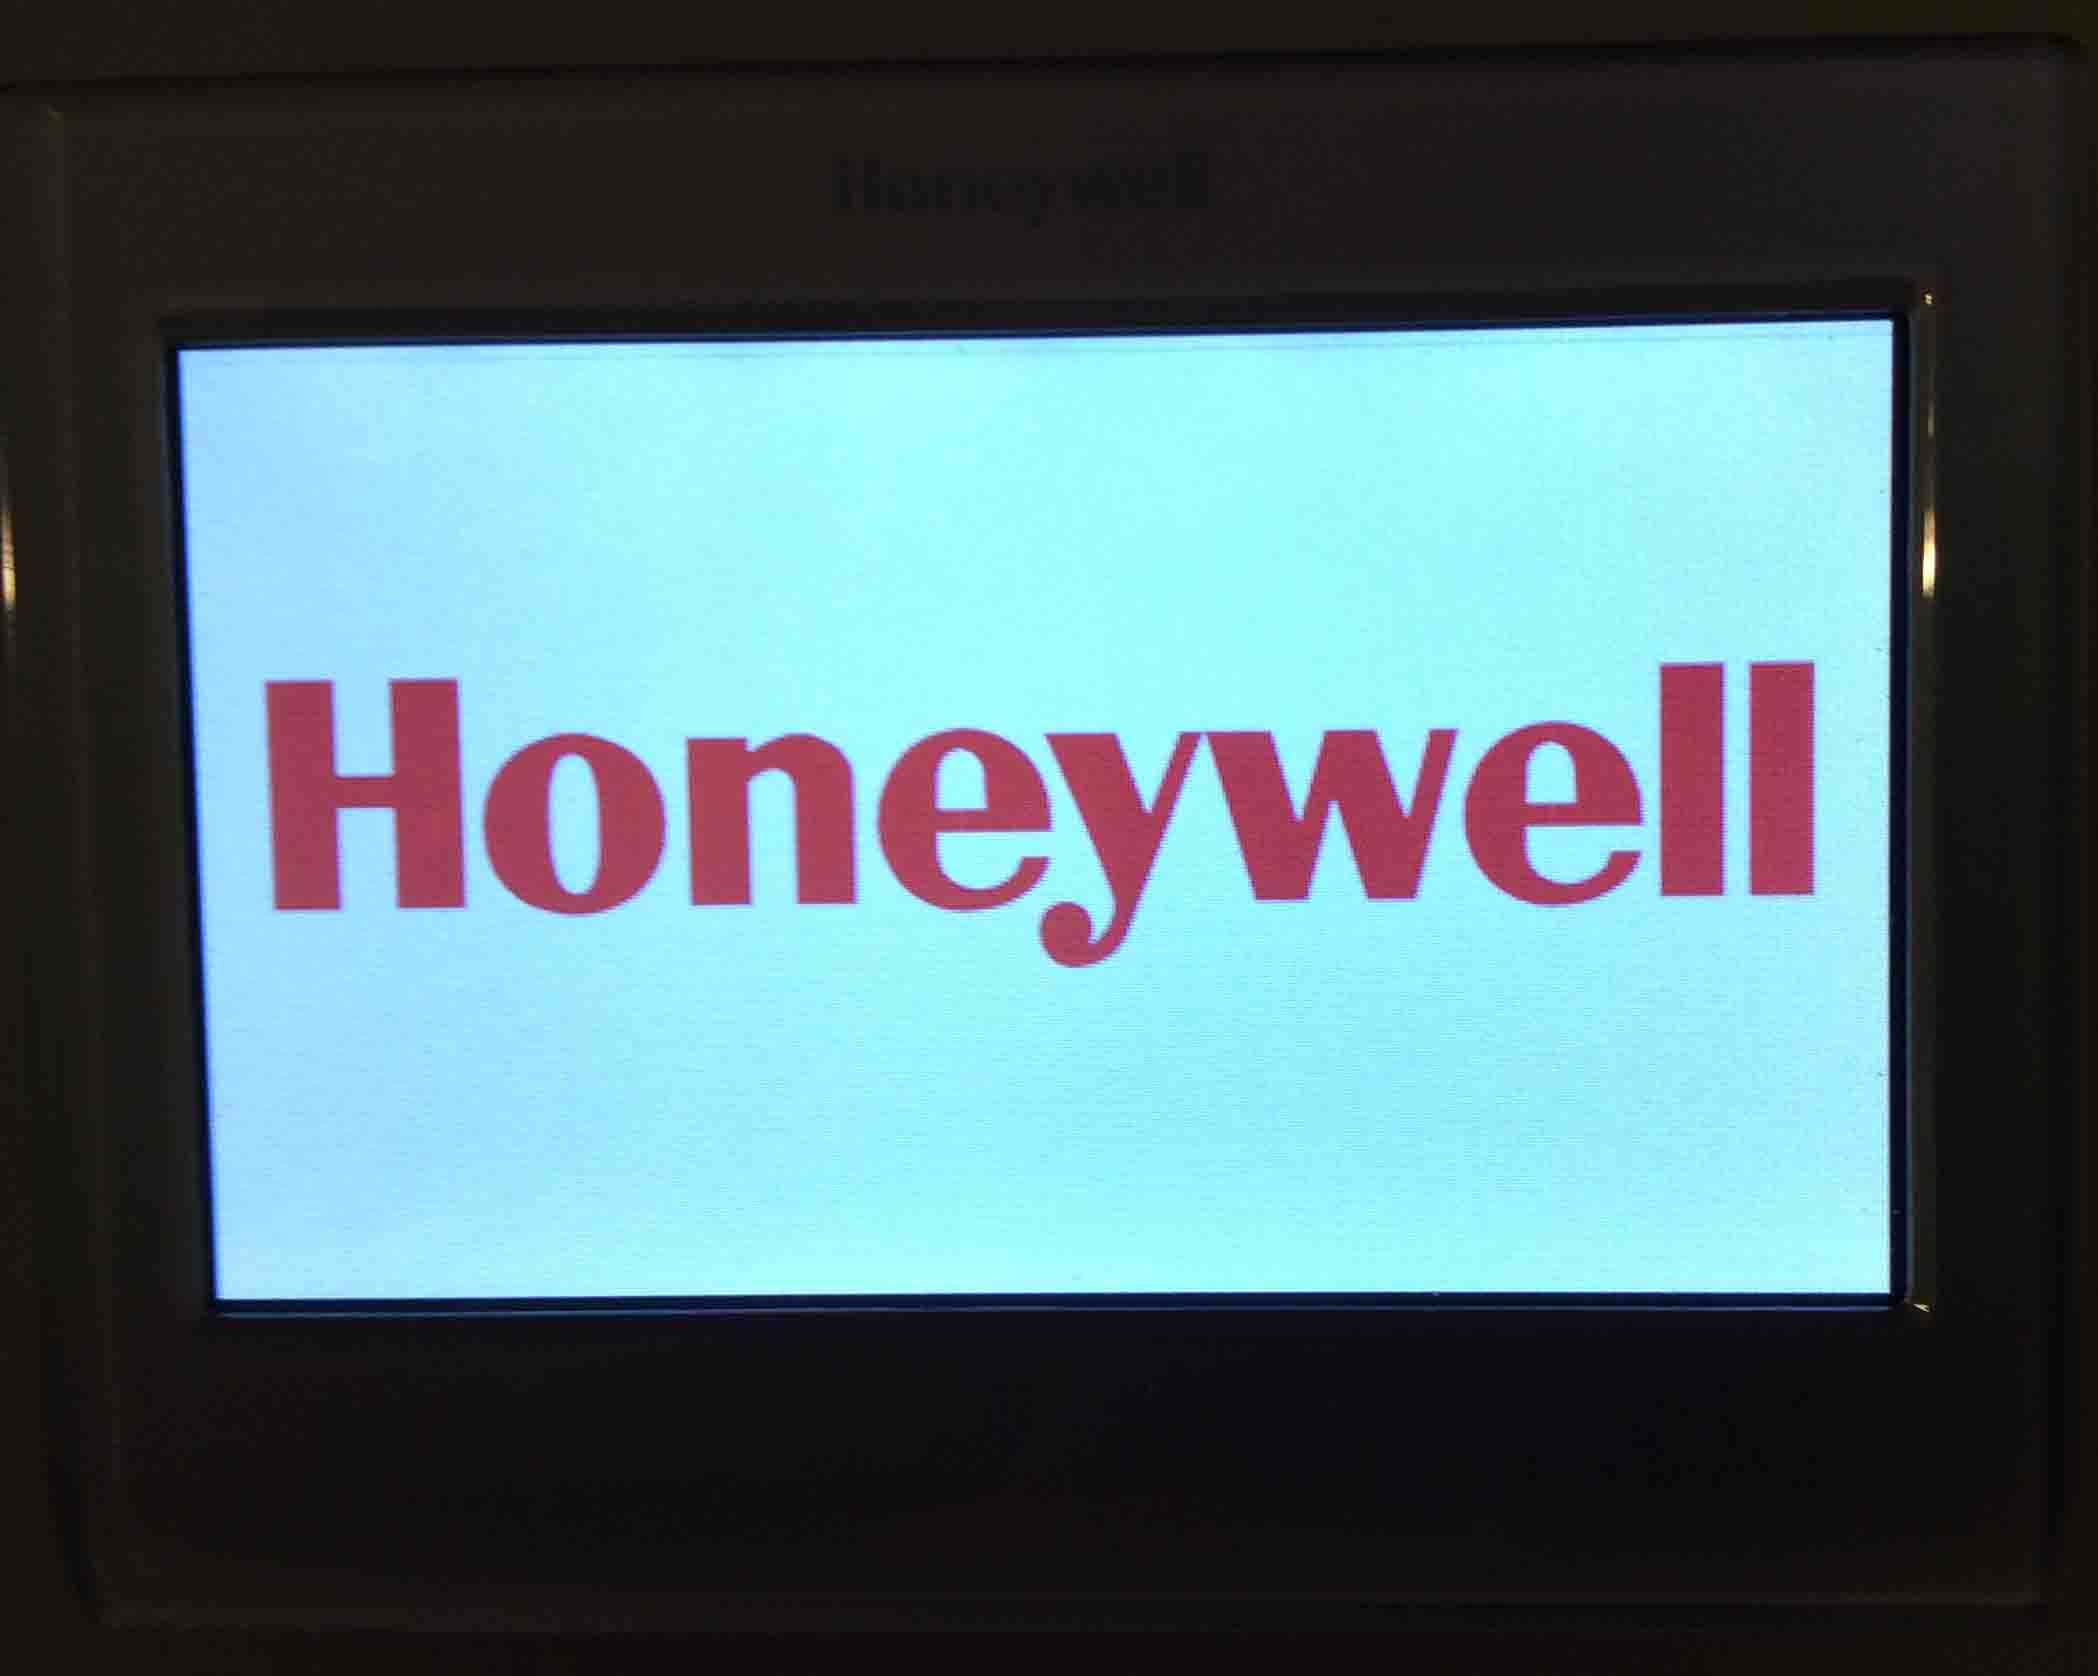 HoneywellRTH9580WFSmartThermostatBootScreen_001?resize=825%2C510&ssl=1 honeywell smart thermostat wiring instructions rth9580wf tom's wiring diagram for honeywell rth6580wf at gsmx.co